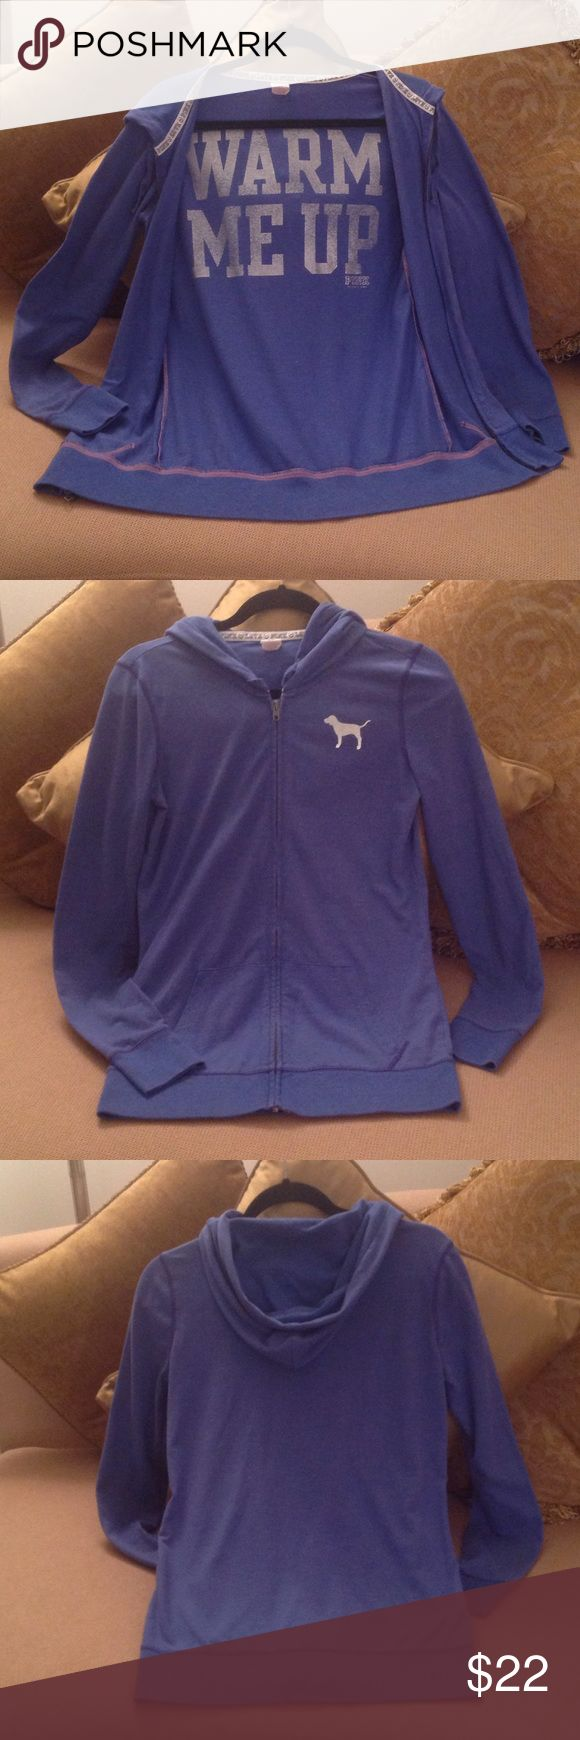 💖 'PINK' -Victoria's Secret Blue / Silver Hoodie Size Small. 'Warm Me Up' is printed in silver on the INSIDE of the jacket. Now that's different!!  The Silver 'Pink Dog' is on the front. This is in excellent condition. PINK Victoria's Secret Tops Sweatshirts & Hoodies